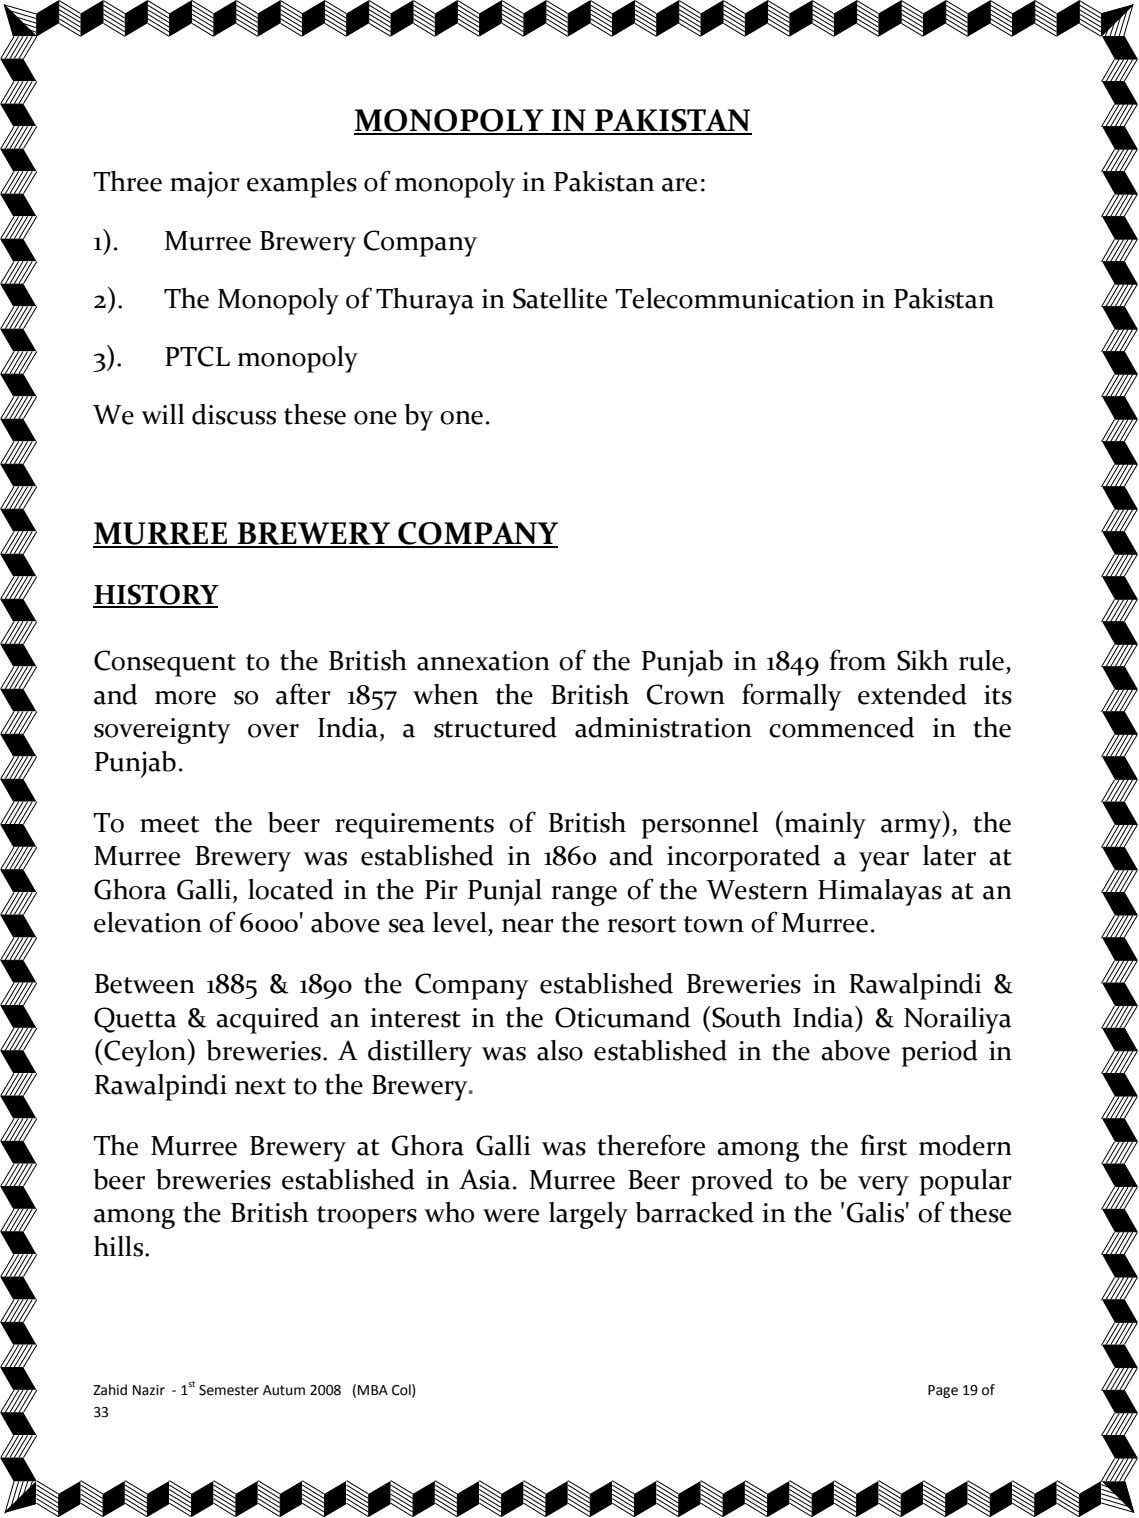 MONOPOLY IN PAKISTAN Three major examples of monopoly in Pakistan are: 1). Murree Brewery Company